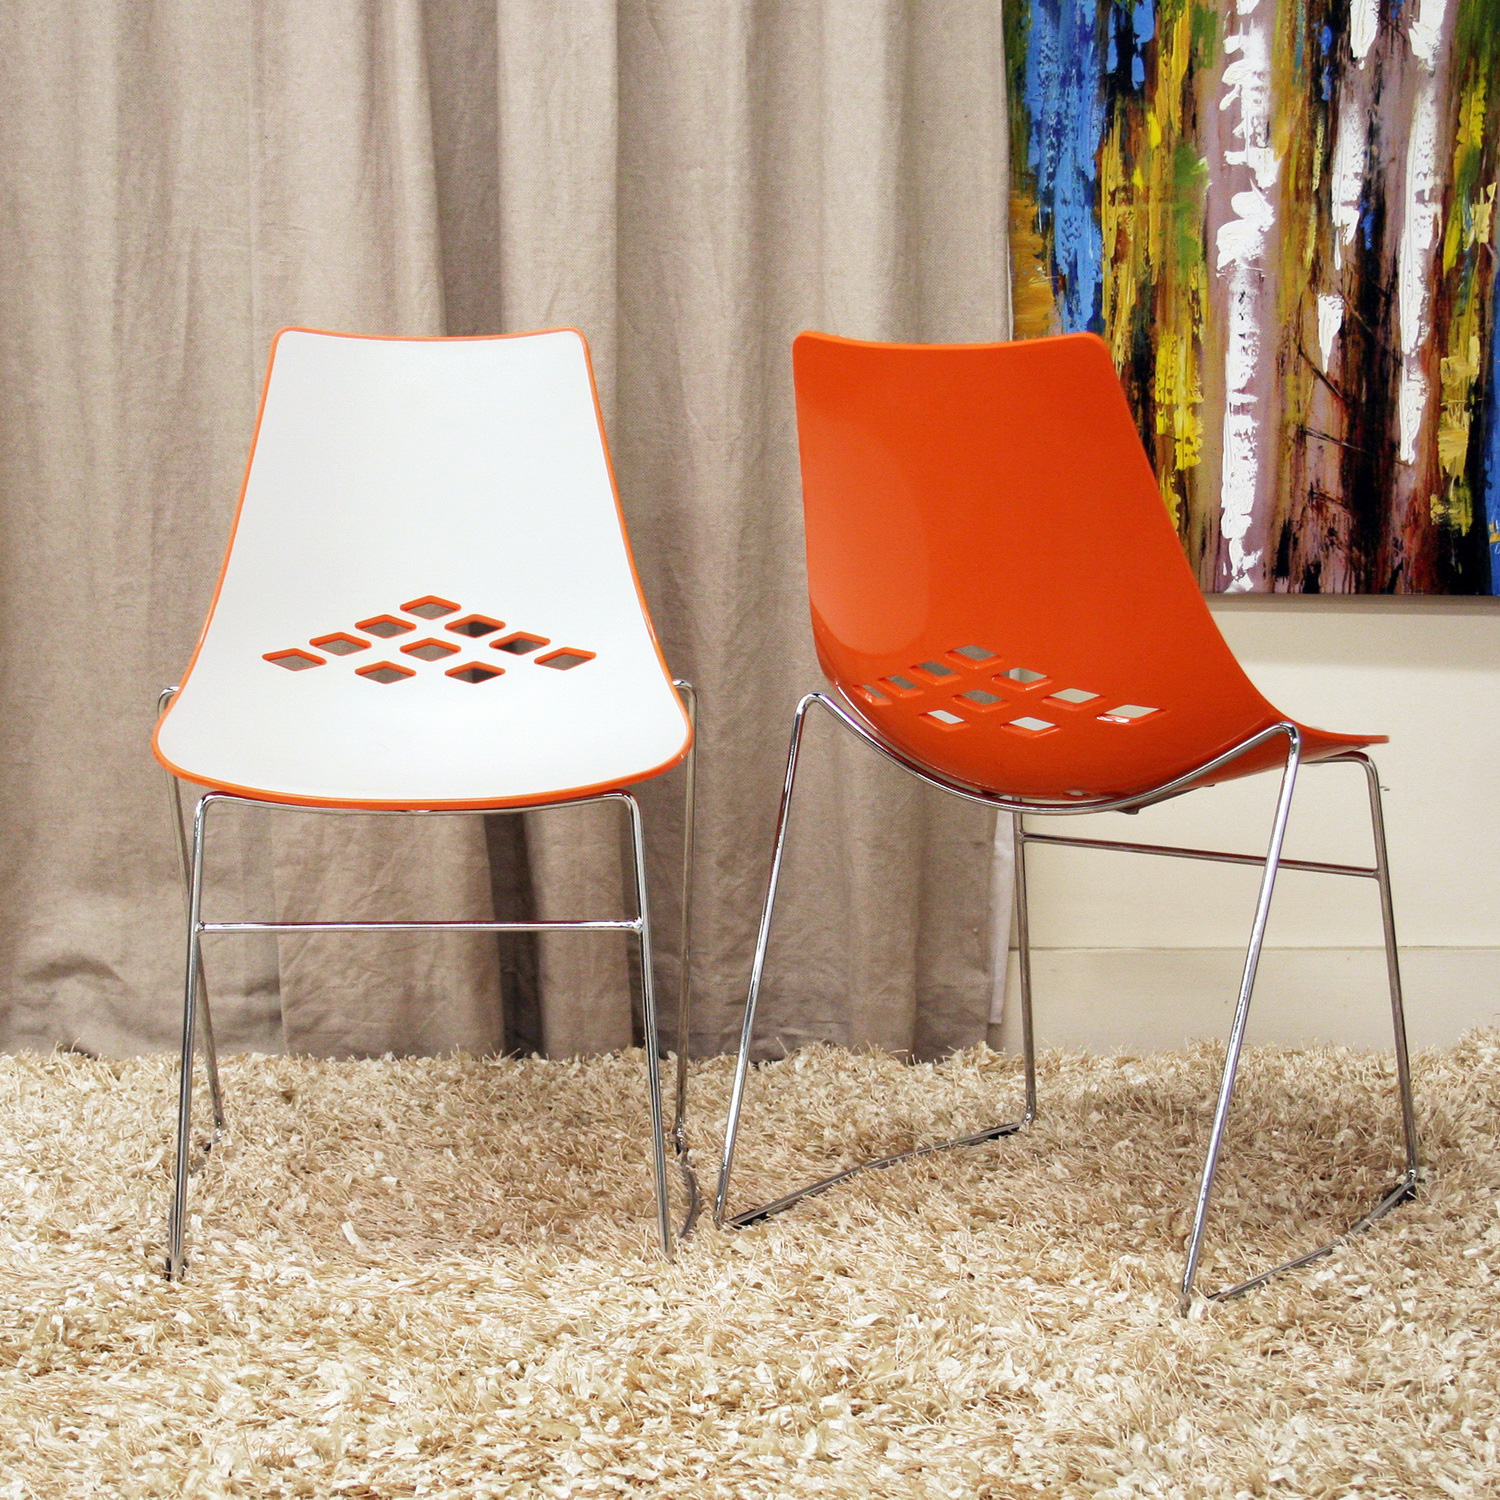 Marvelous Jupiter White And Orange Plastic Modern Dining Chairs   Set Of 2 By  Wholesale Interiors Image